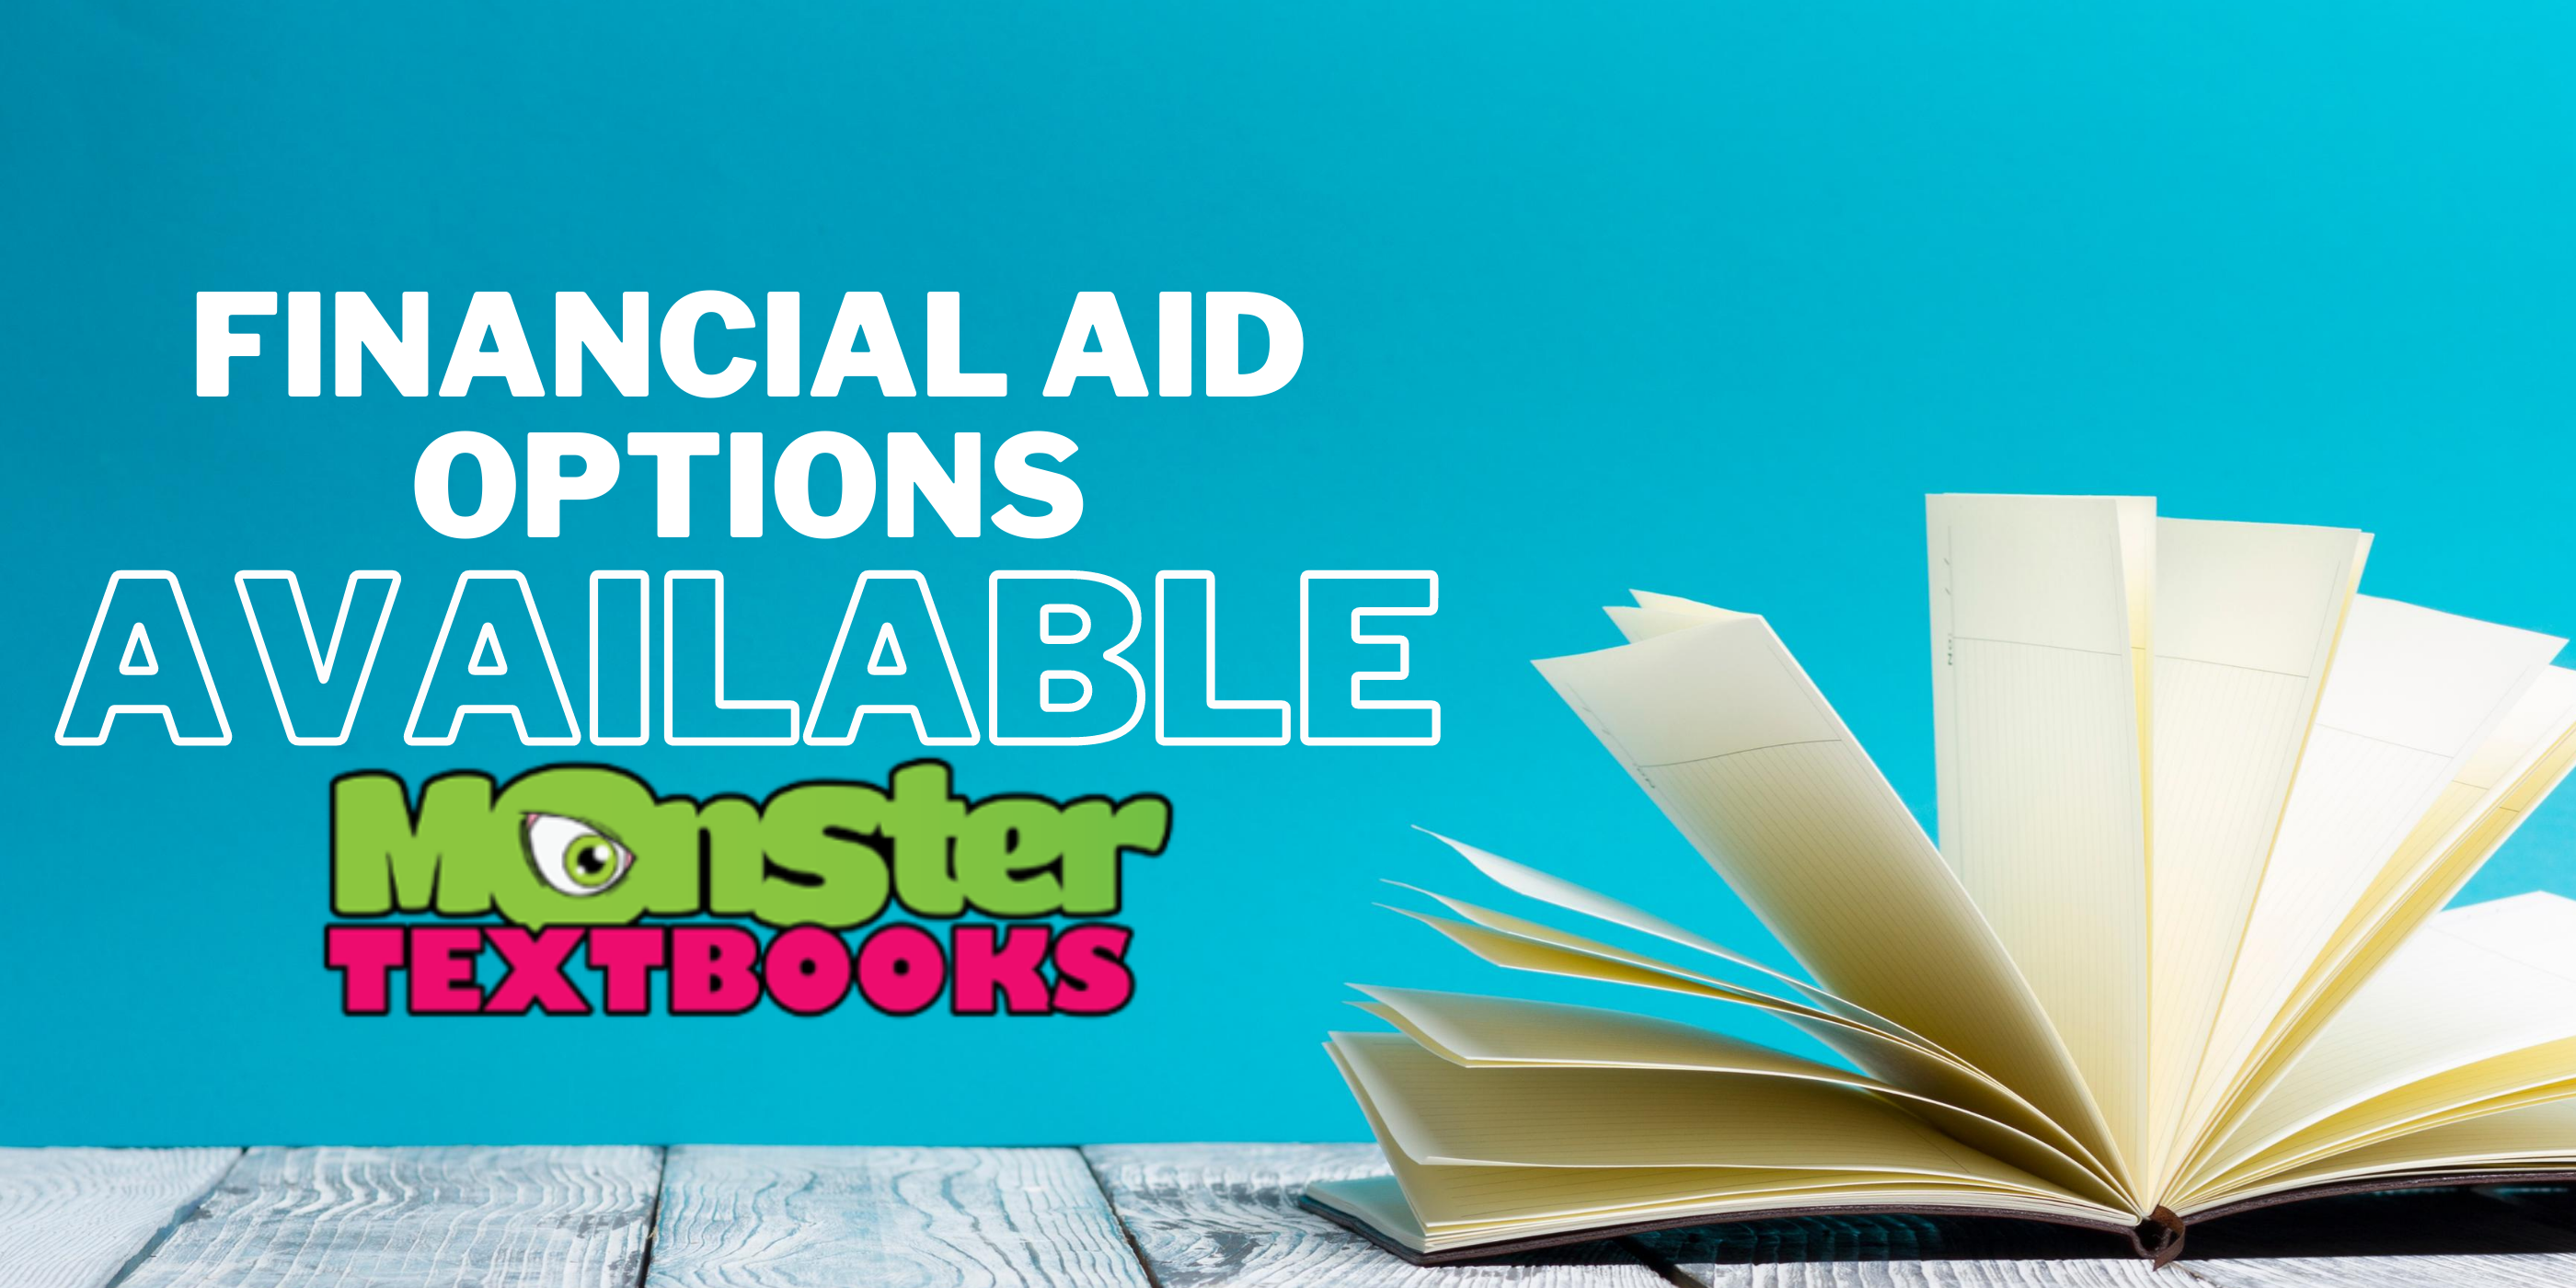 Financial Aid Options Available